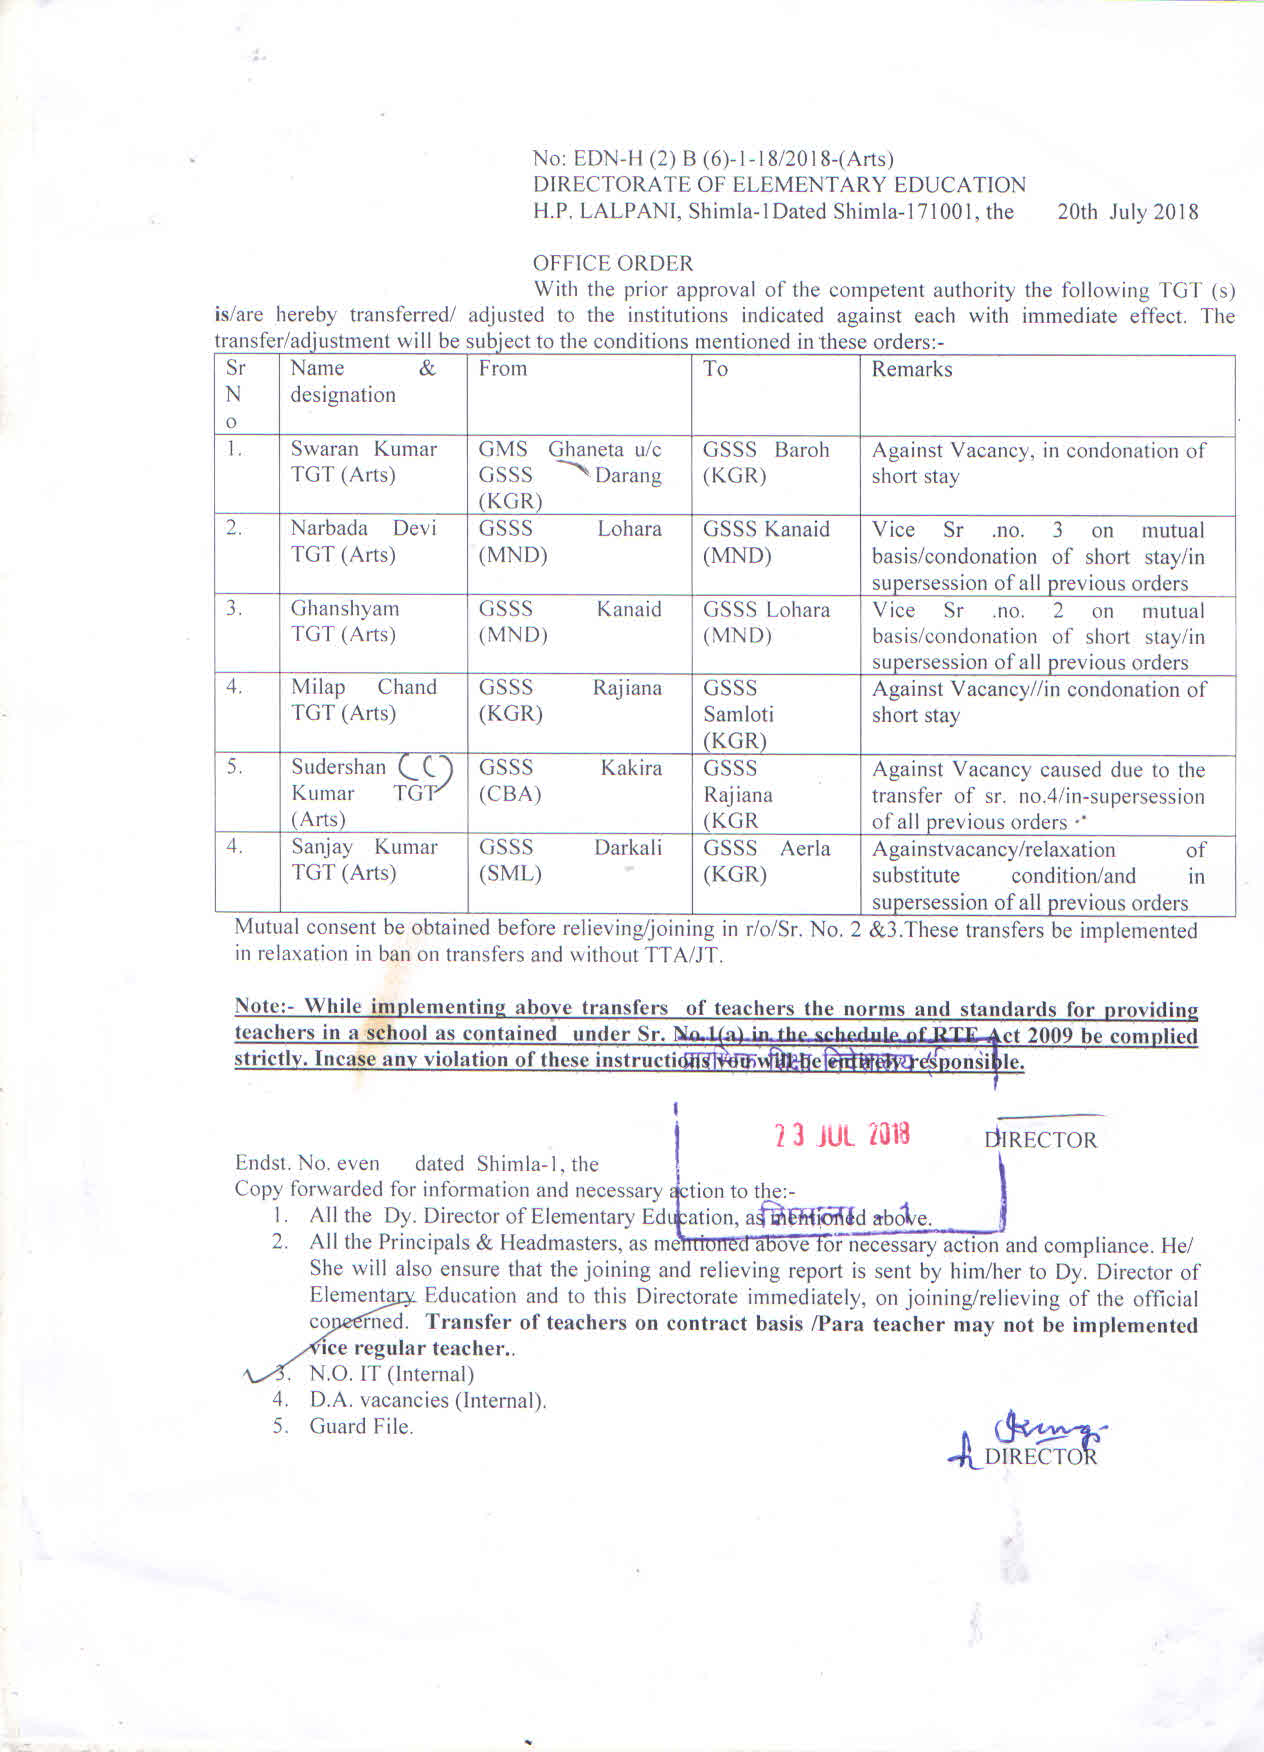 Transfer Orders - Elementary Education Department, Government of